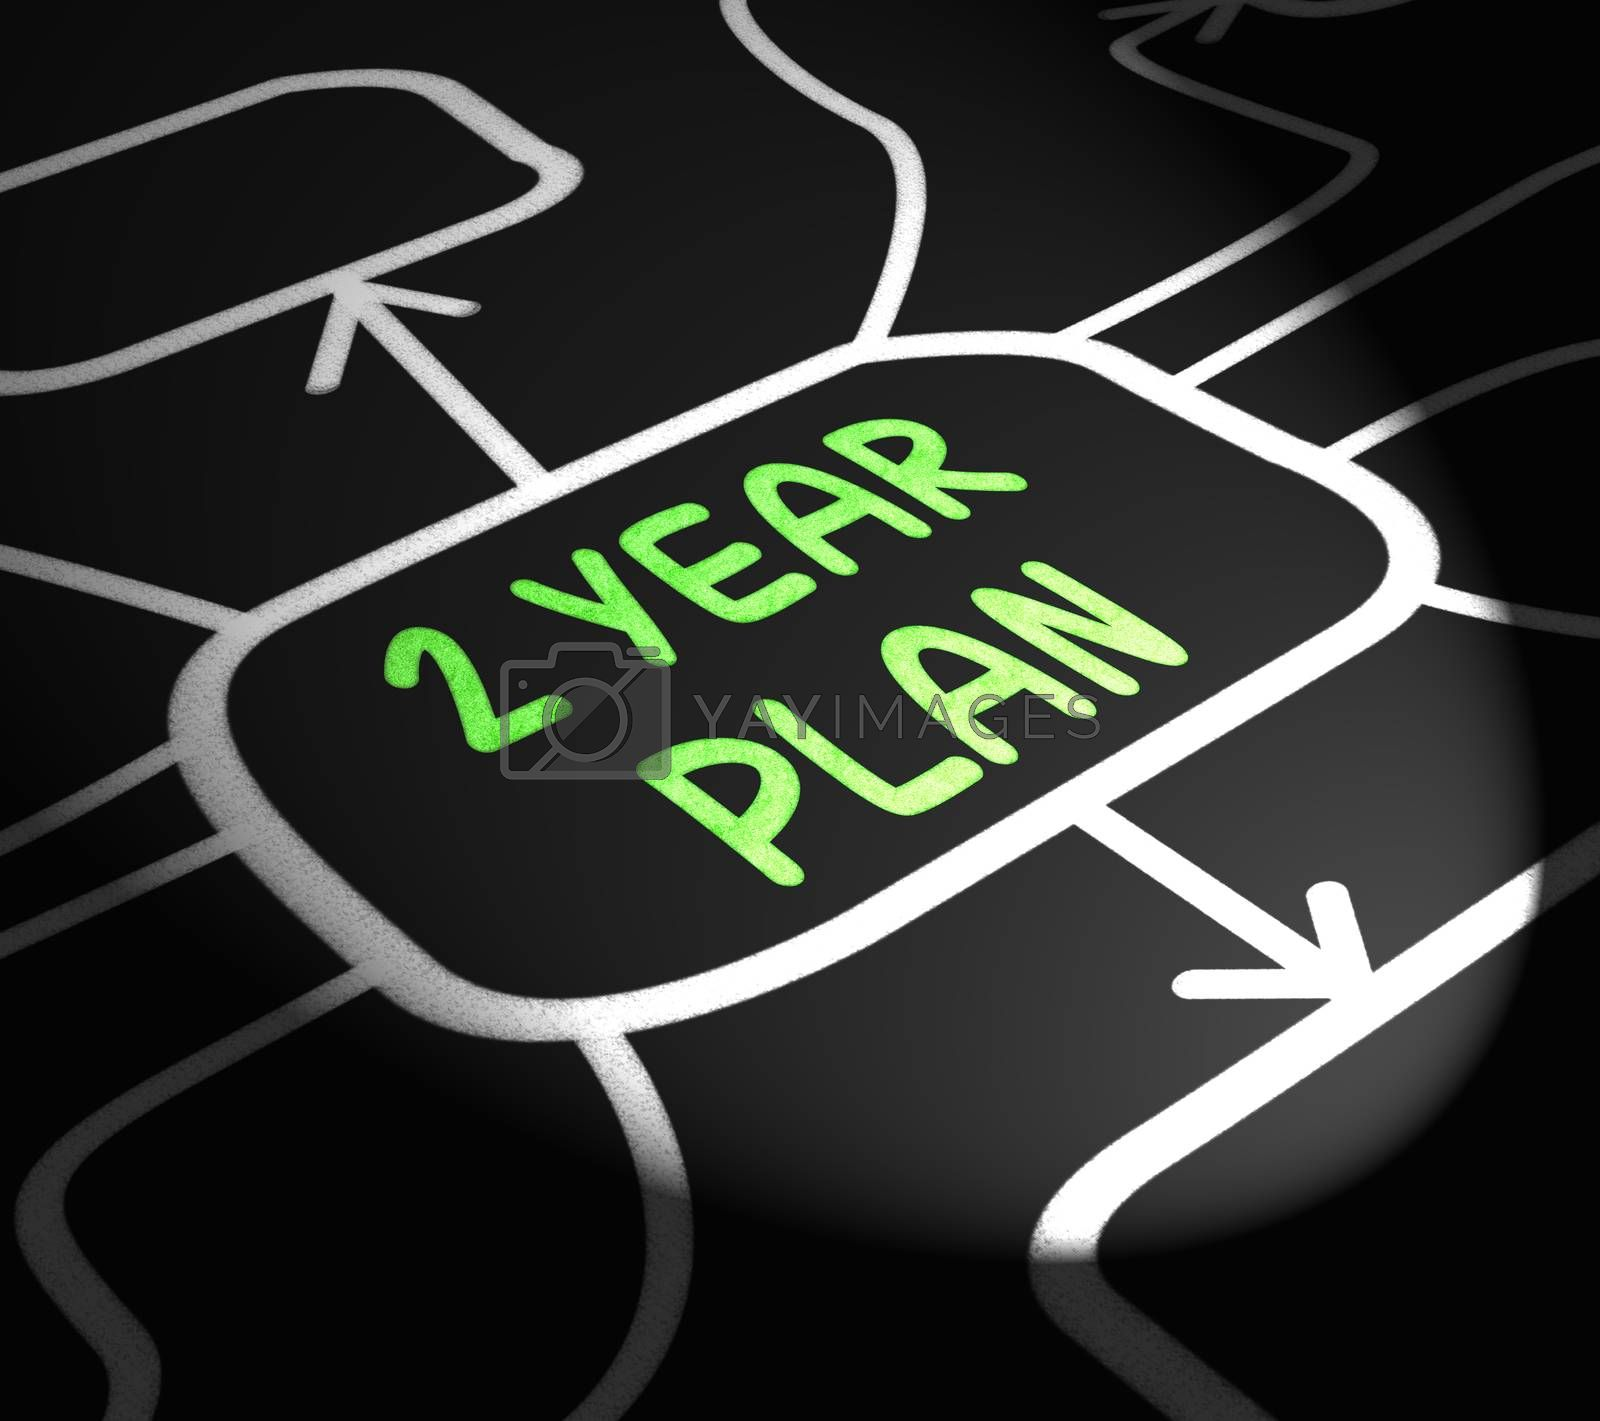 Two Year Plan Arrows Means Program For Next 2 Years by stuartmiles